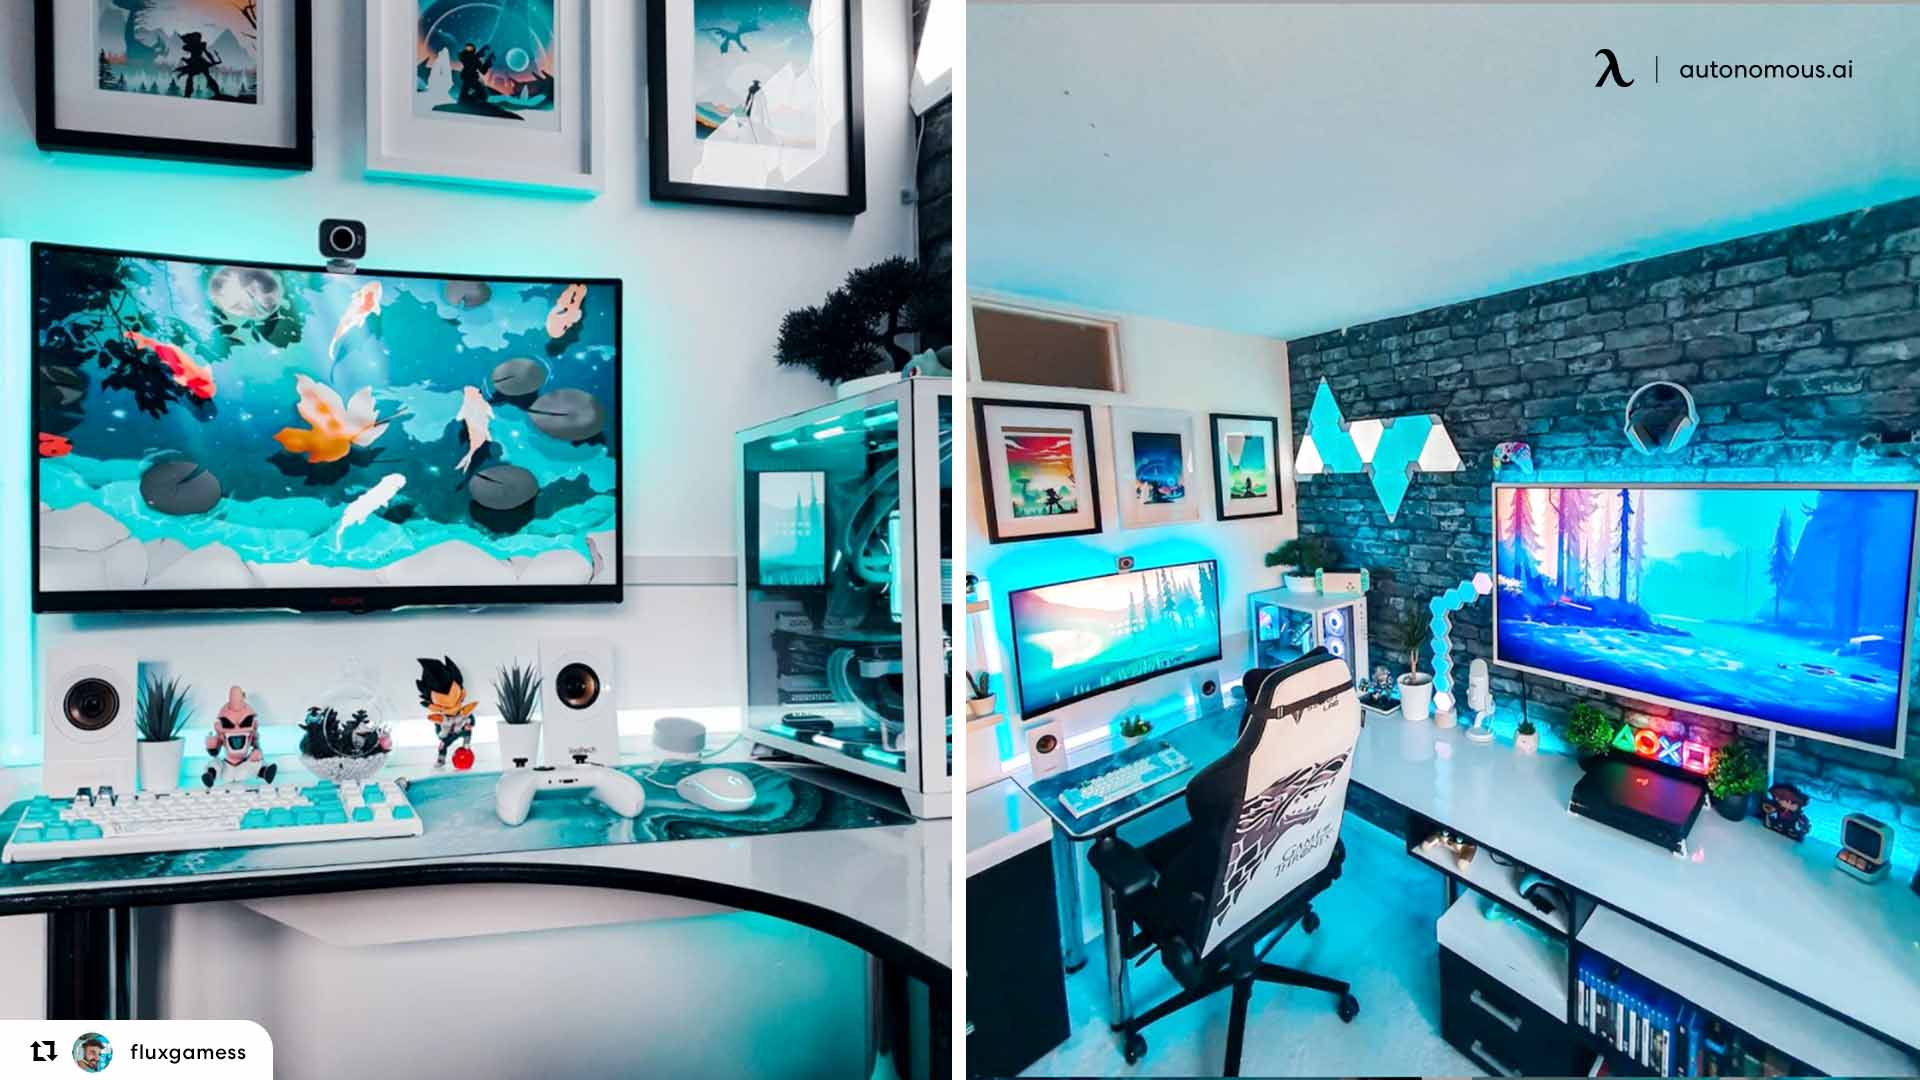 Consider Maintaining a Lighting Color Scheme